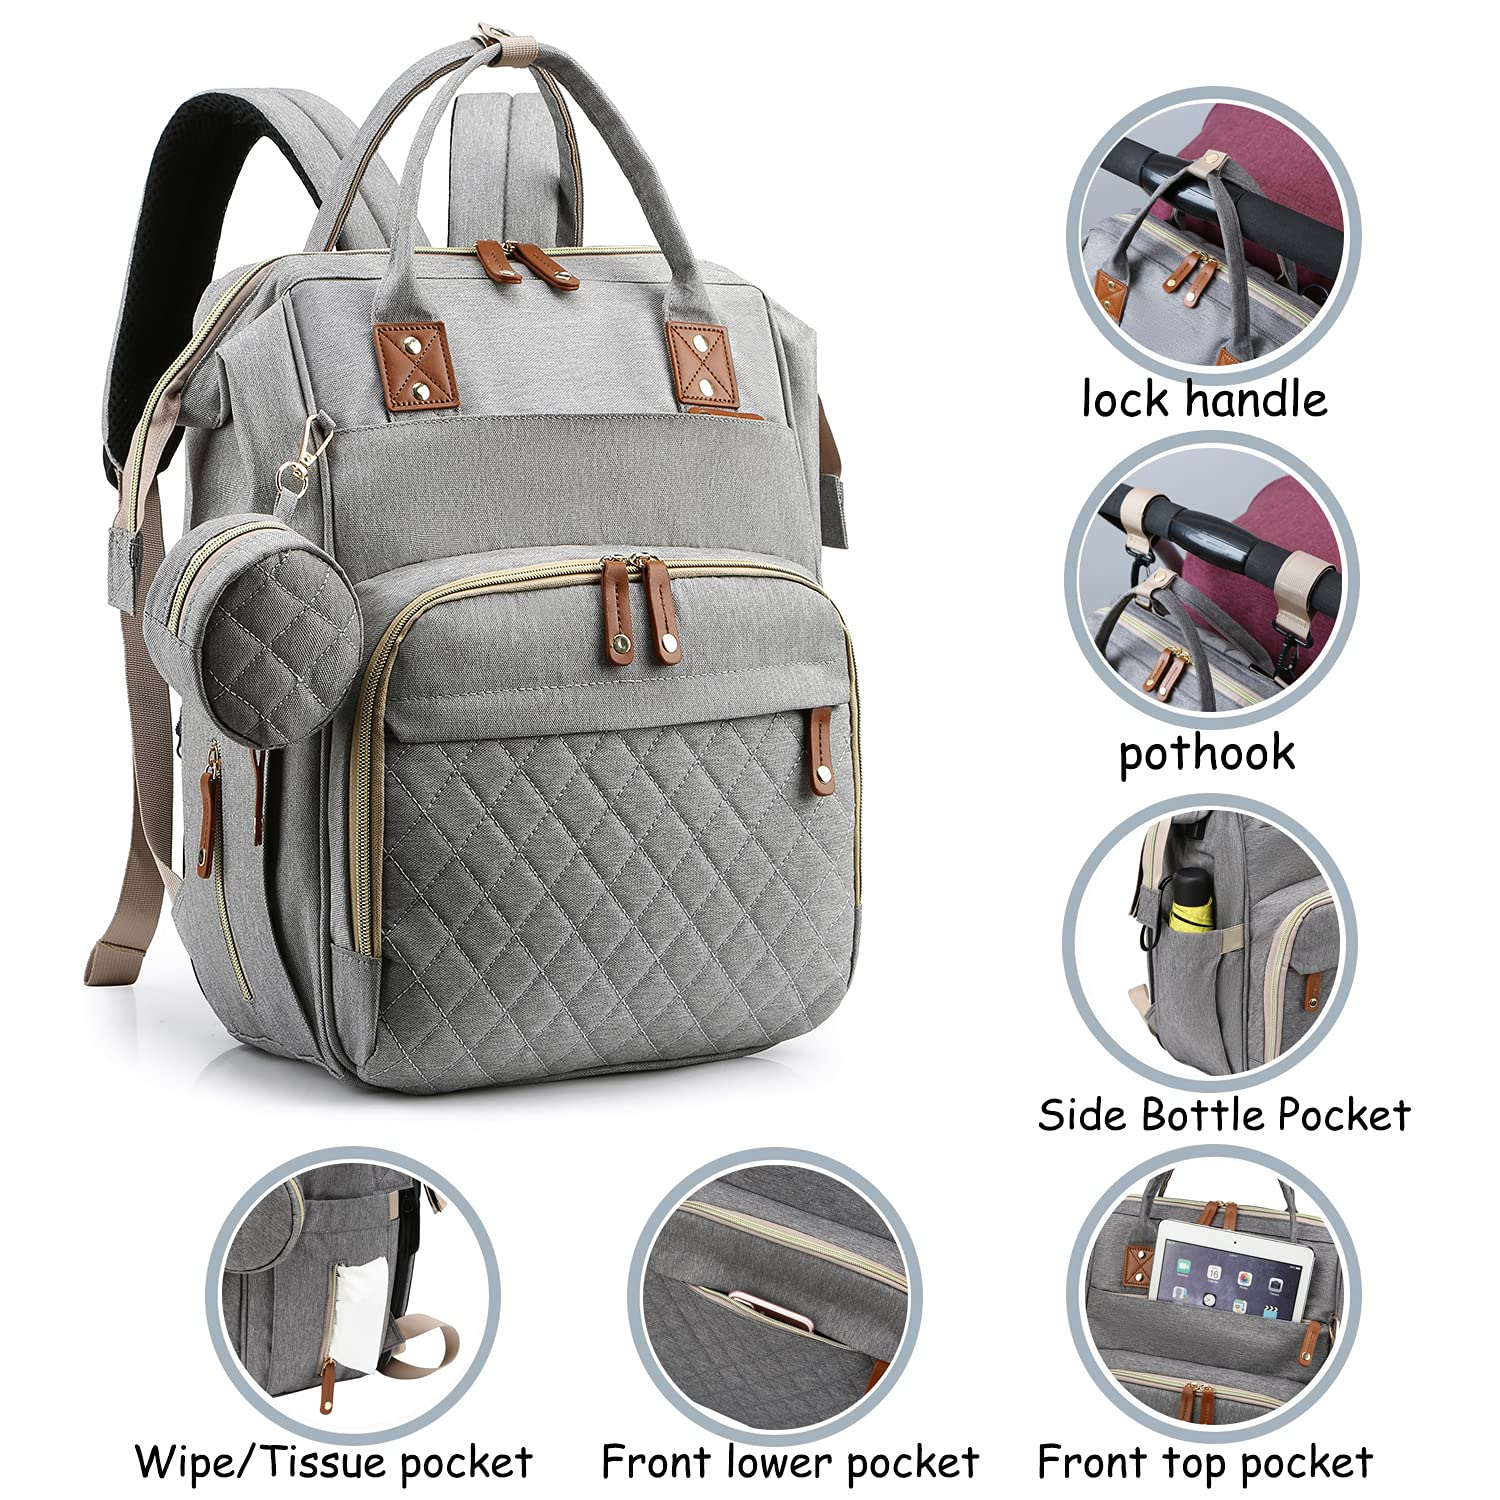 Diaper Bag Backpack,Multifunction Travel Backpack,Maternity Baby Changing Bags, Large Capacity, Waterproof and Stylish, Grey